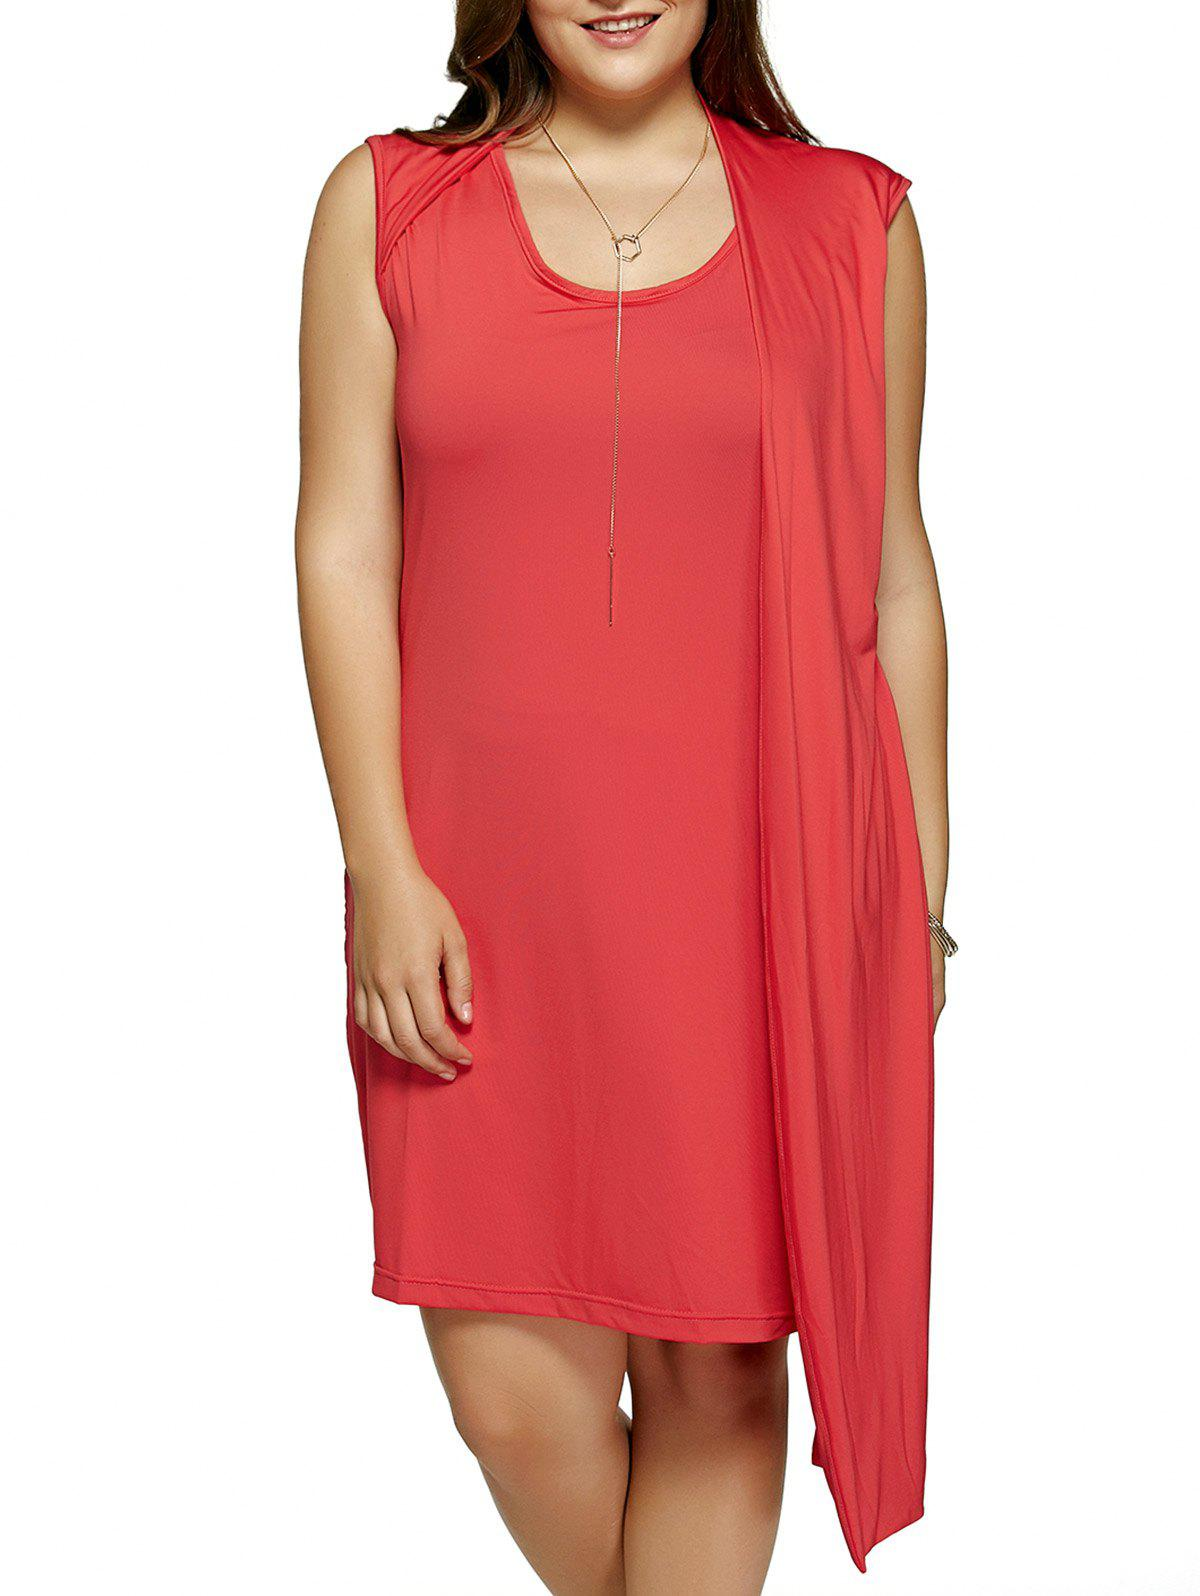 Plus Size One-Side Overlay Red Dress